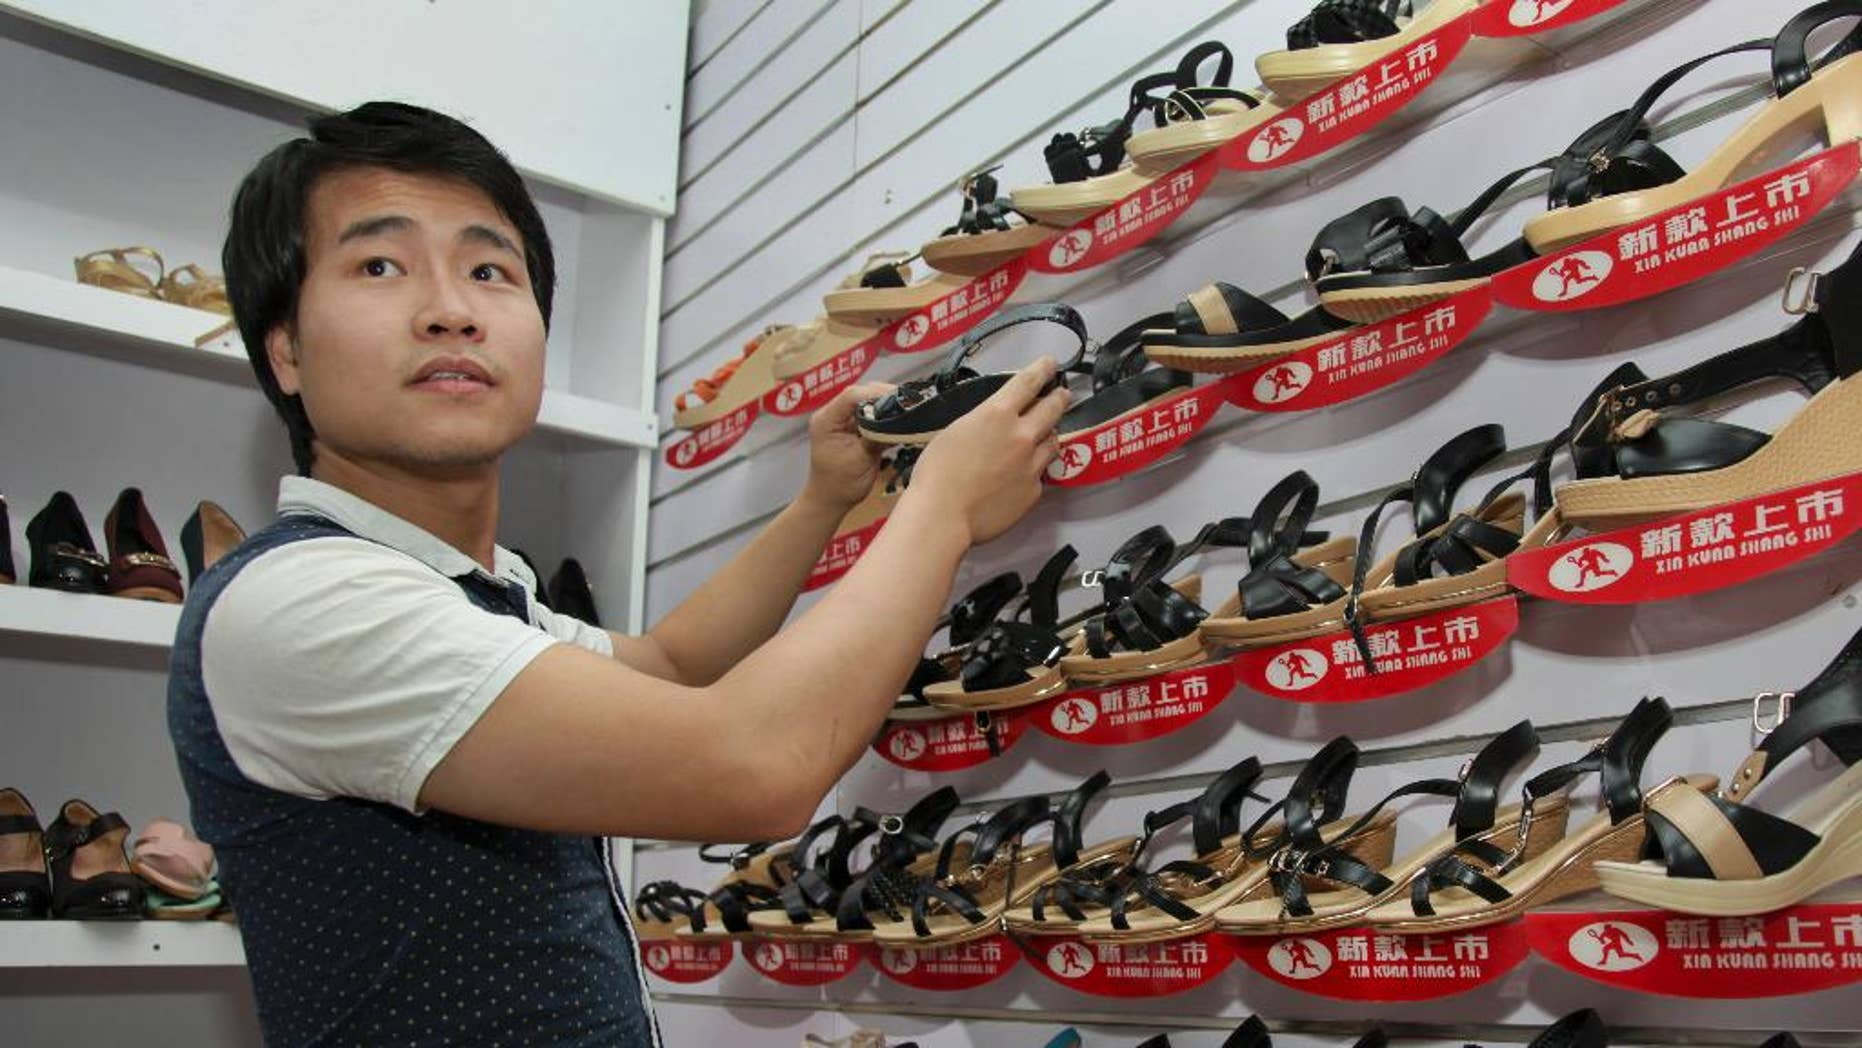 FILE--In this a Tuesday, June 23, 2015 file photo,  ofChinese national Wei Kun  as he adjusts a display as he waits for customers at his shoe shop in Kampala, Uganda. Years of growing animosity at Chinese traders turned into a protest by hundreds in Uganda's capital on Wednesday April 19, 2017  against what local businesses called unfair competition, while the mayor warned against the tensions turning into xenophobic attacks. (AP Photo/Stephen Wandera-File)